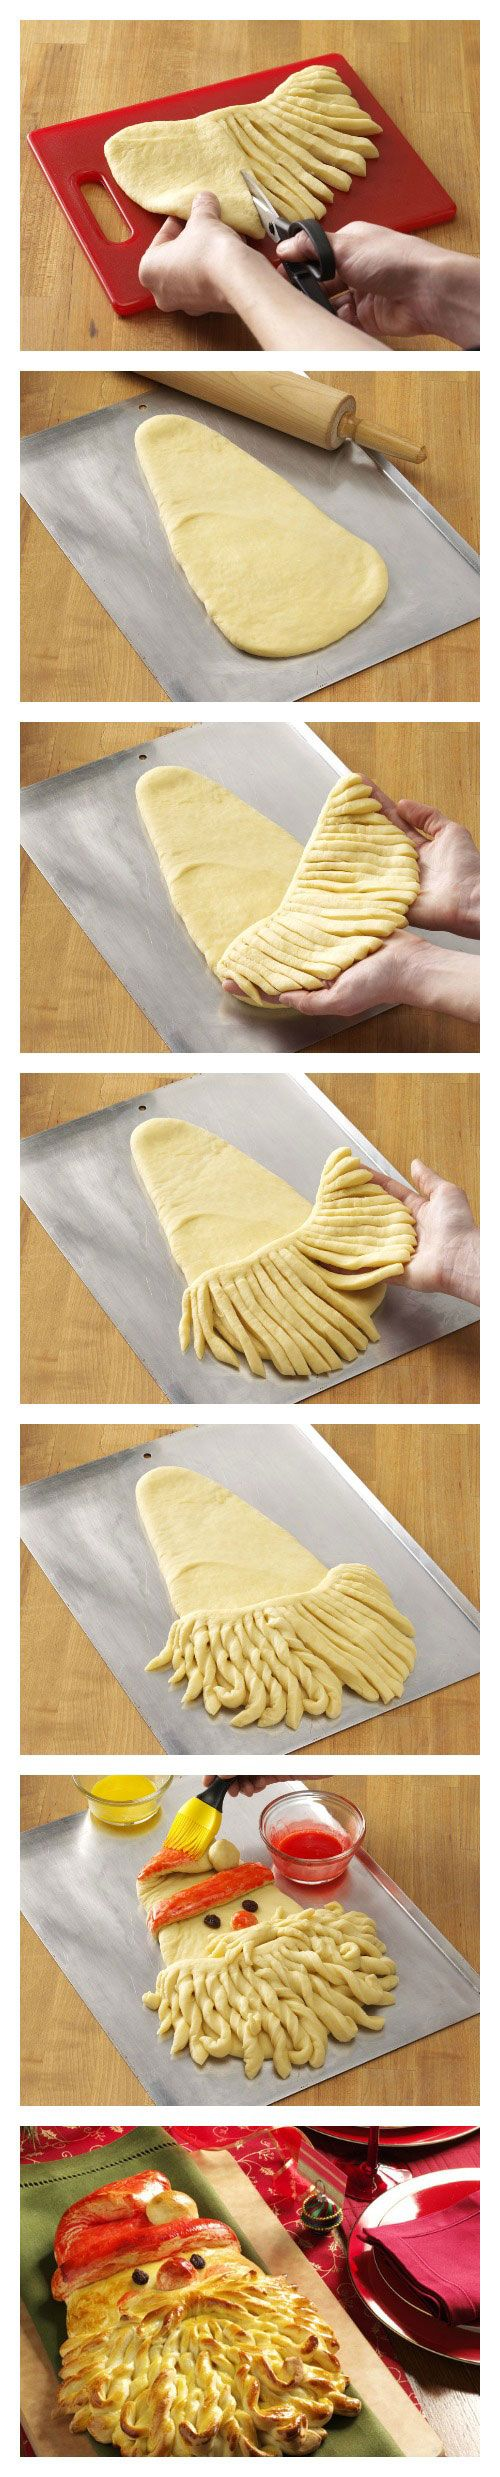 How to Make Santa Bread. From tasteofhome.com.